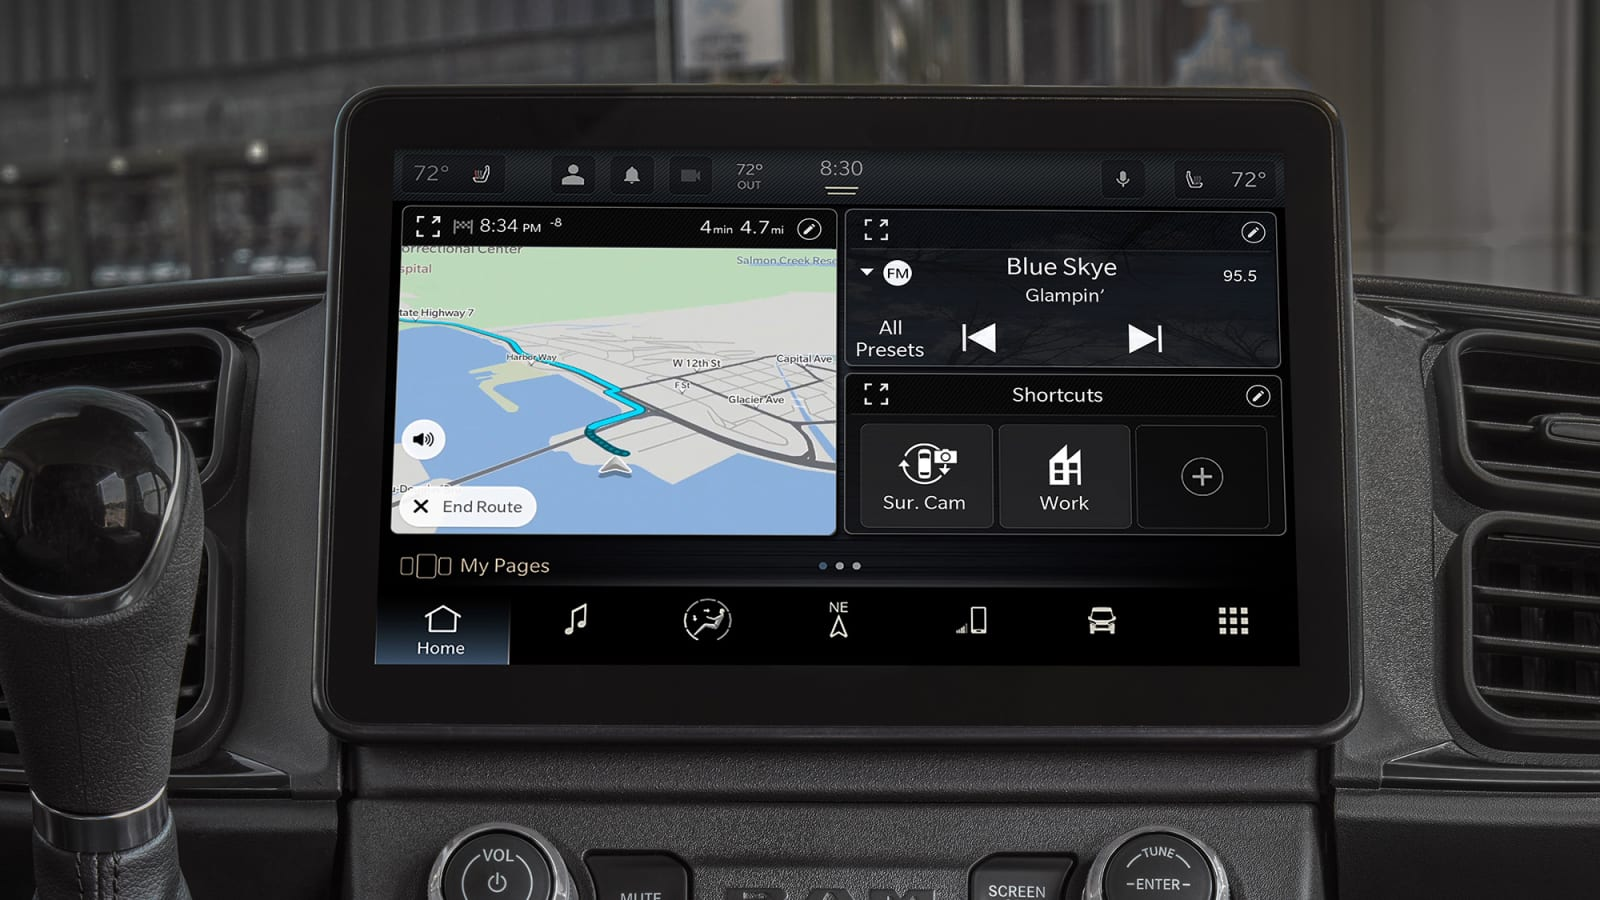 2022 Ram 1500, HD lineup and ProMaster all updated with Uconnect 5 infotainment